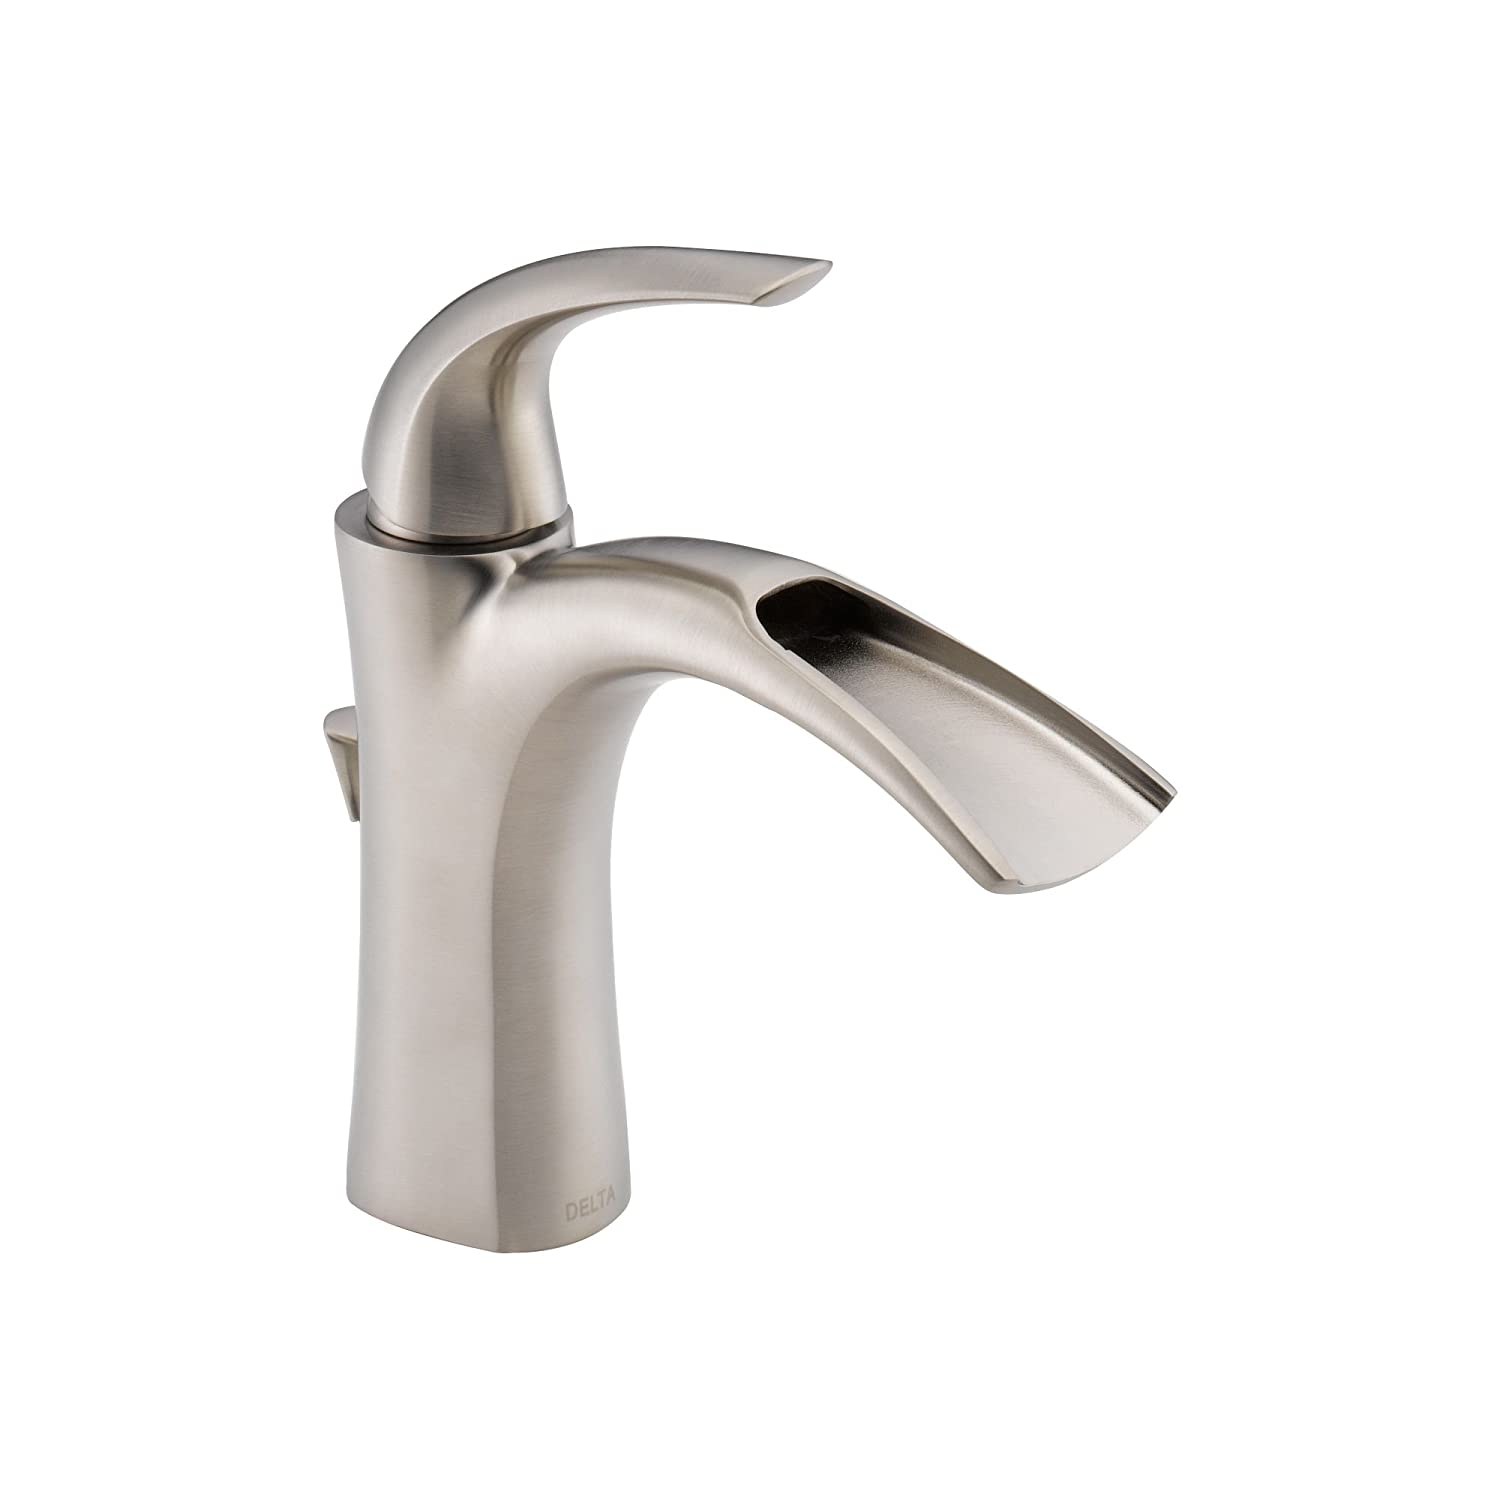 metal photo windemere faucet on architecture surprising handle widespread ledland white other ideas bathroom decor gallery decorating faucets charming trend apartment double or with delta